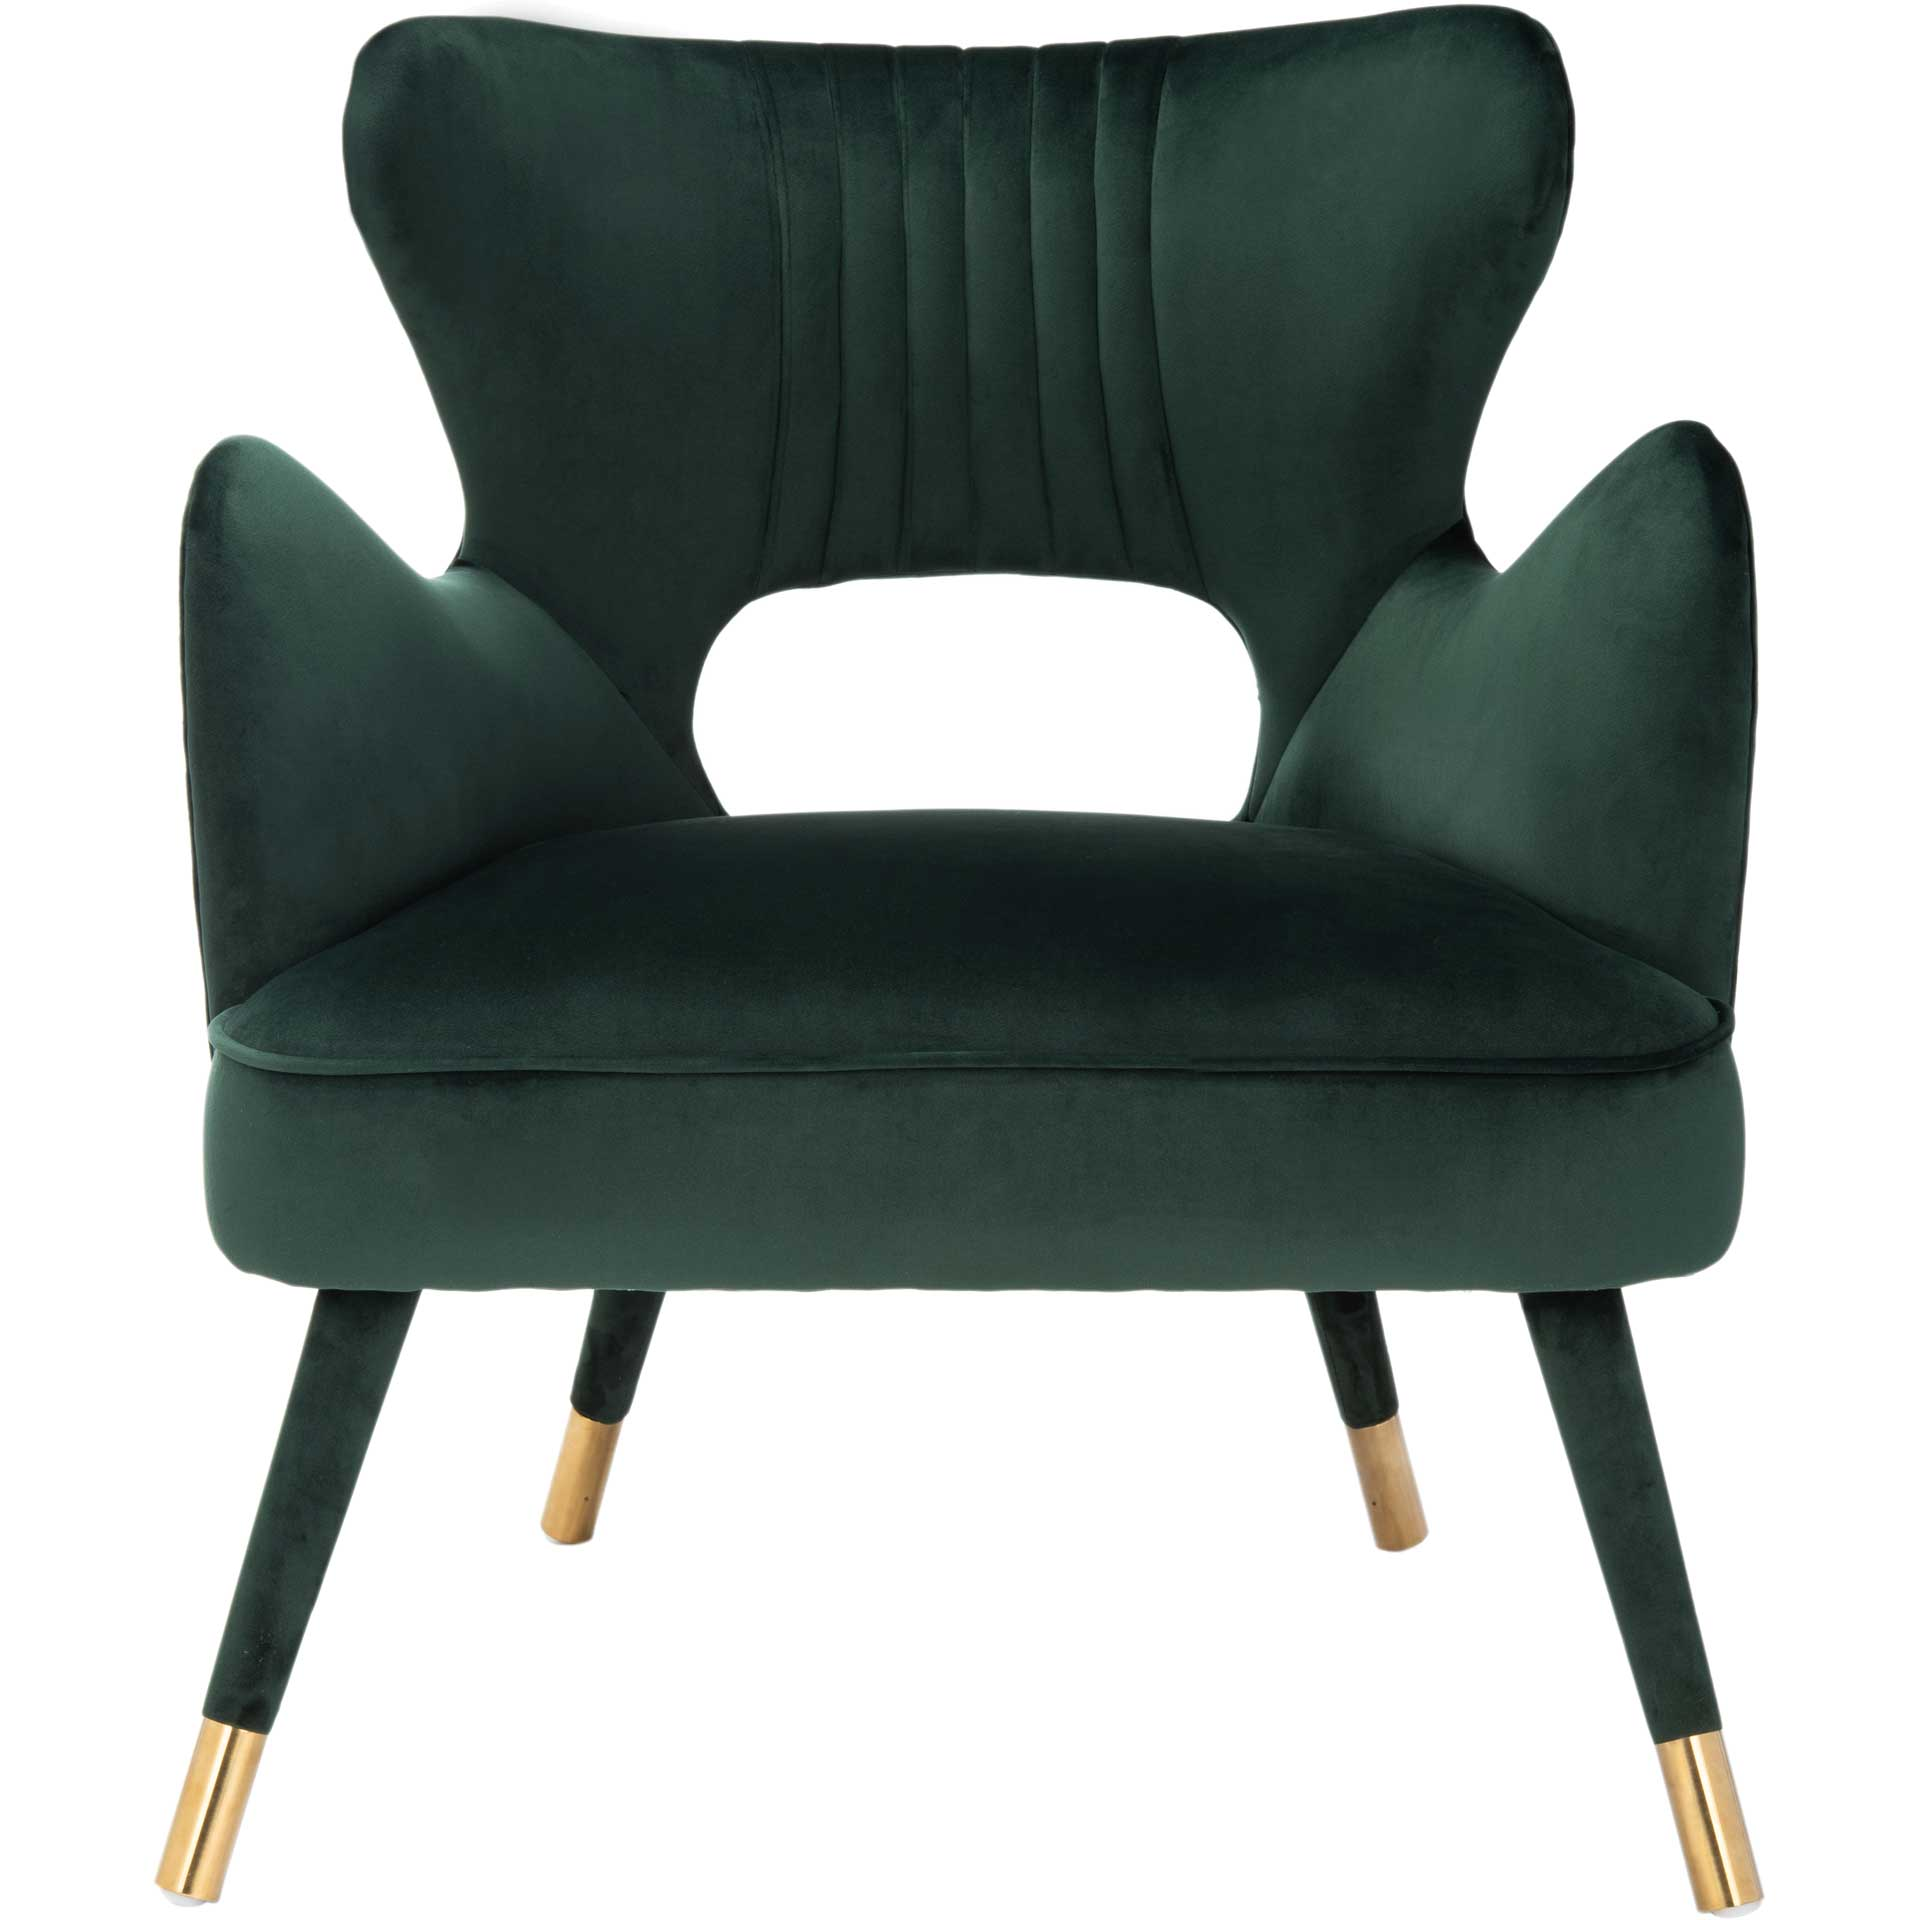 Blake Wingback Accent Chair Forest Green/Gold